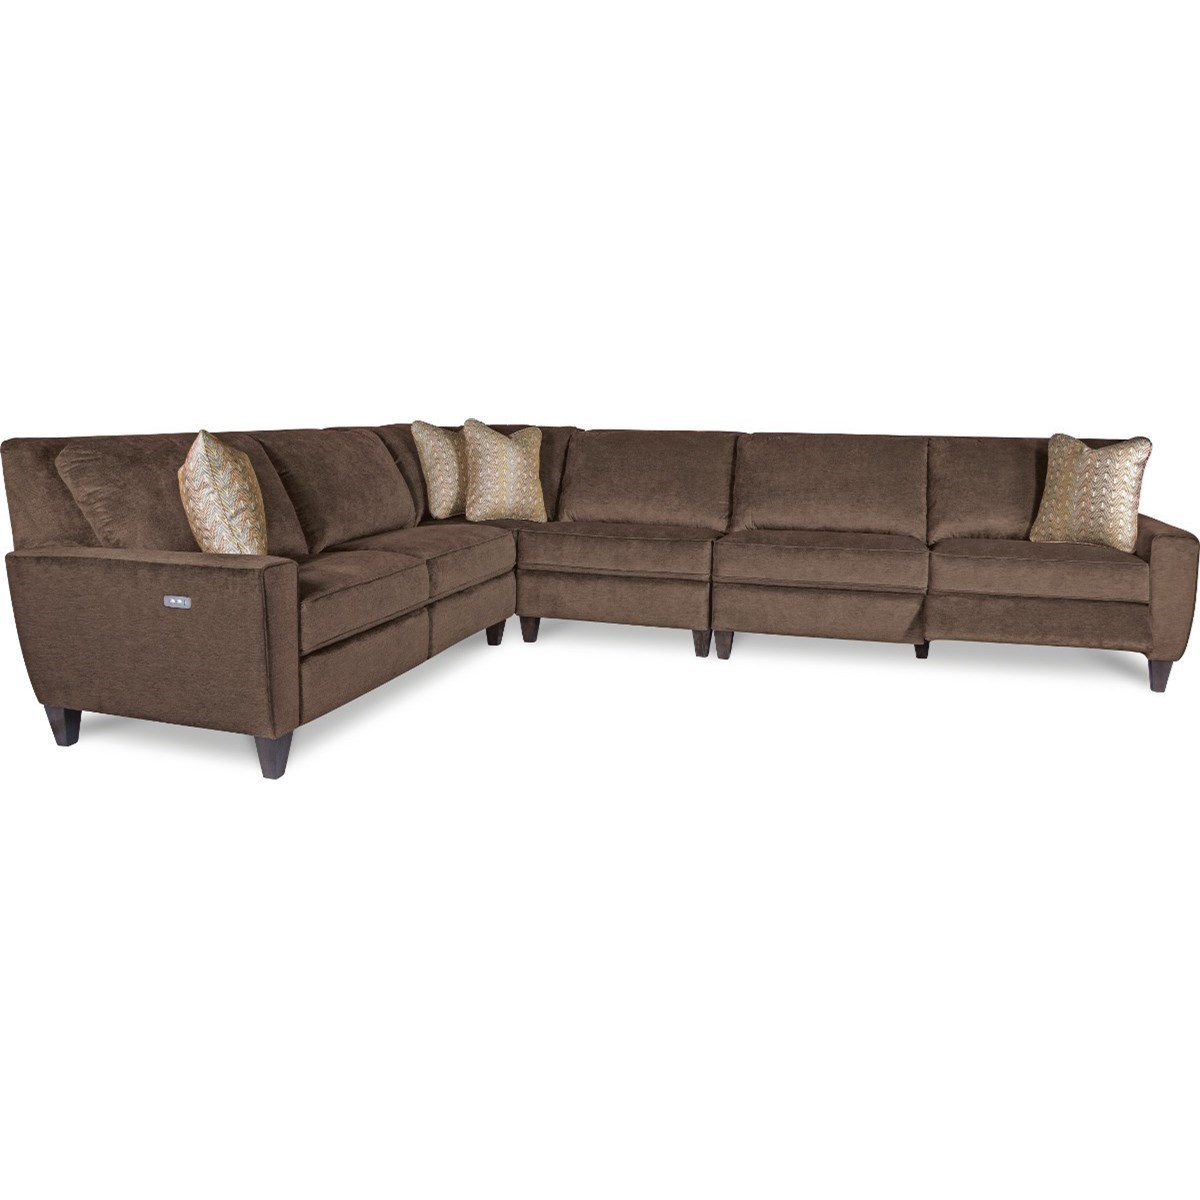 Superieur La Z Boy Edie4 Pc Reclining Sectional Sofa ...